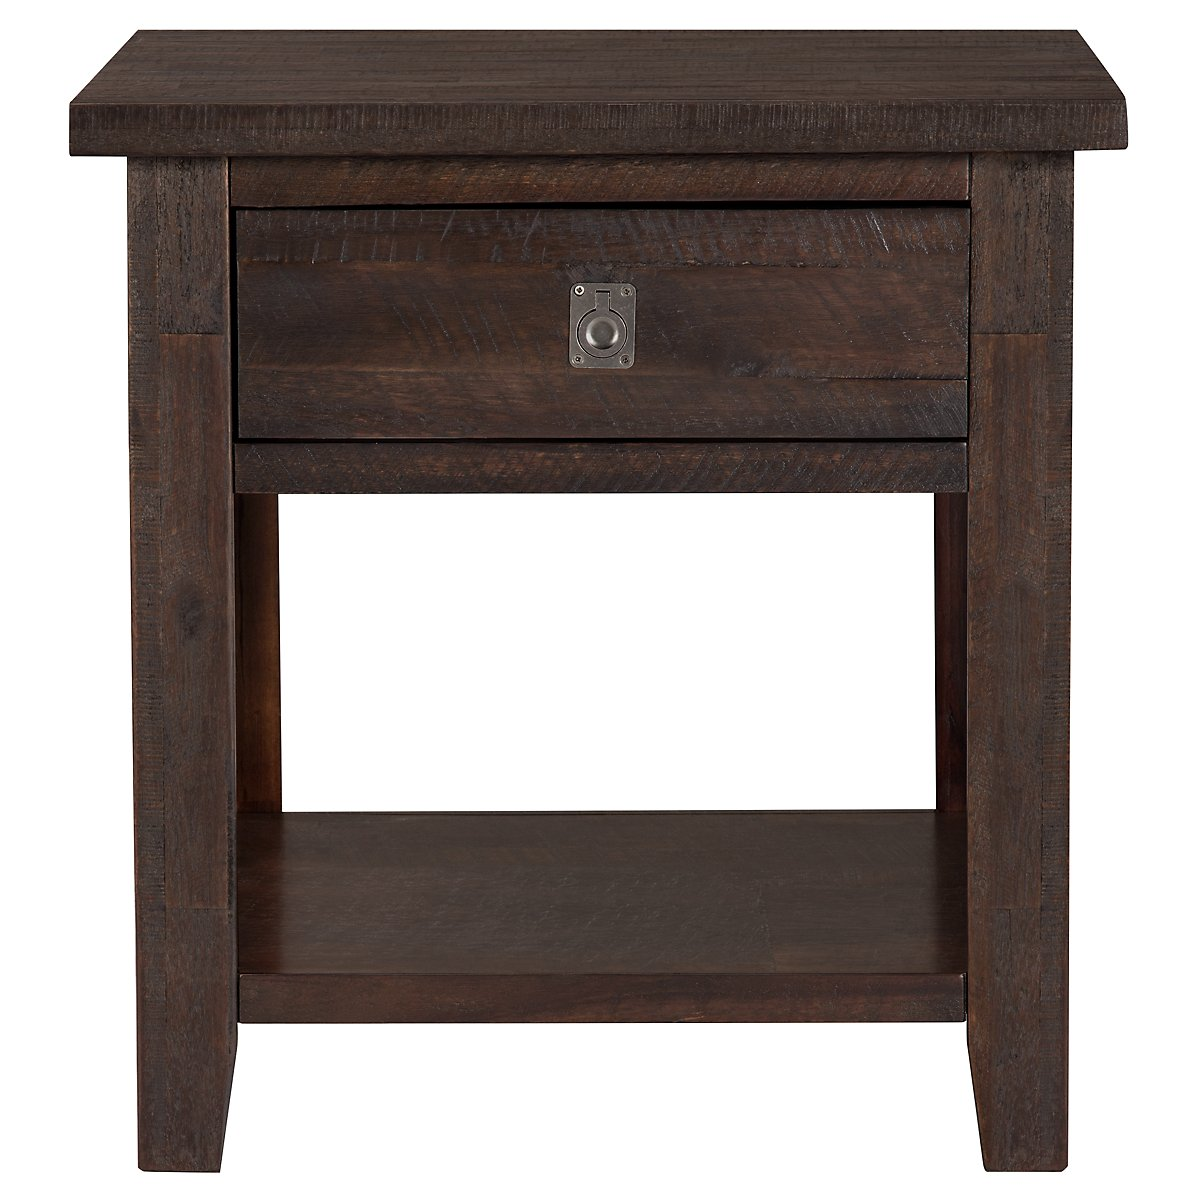 Kona Grove Dark Tone Storage End Table